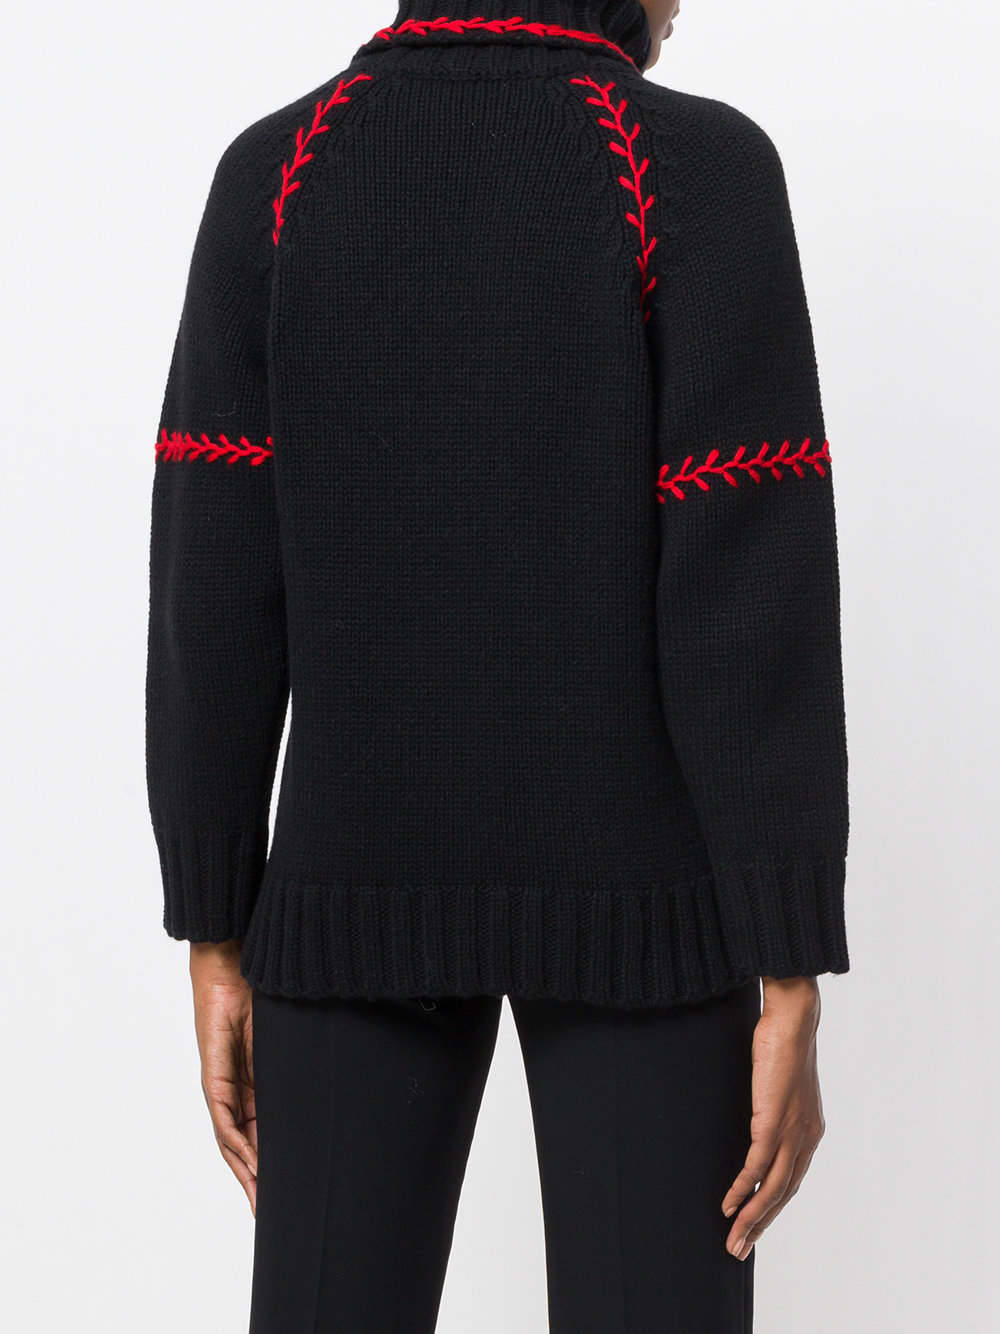 17-18AW AM263 FEATHER-STITCHED OVERSIZE CASHMERE SWEATER